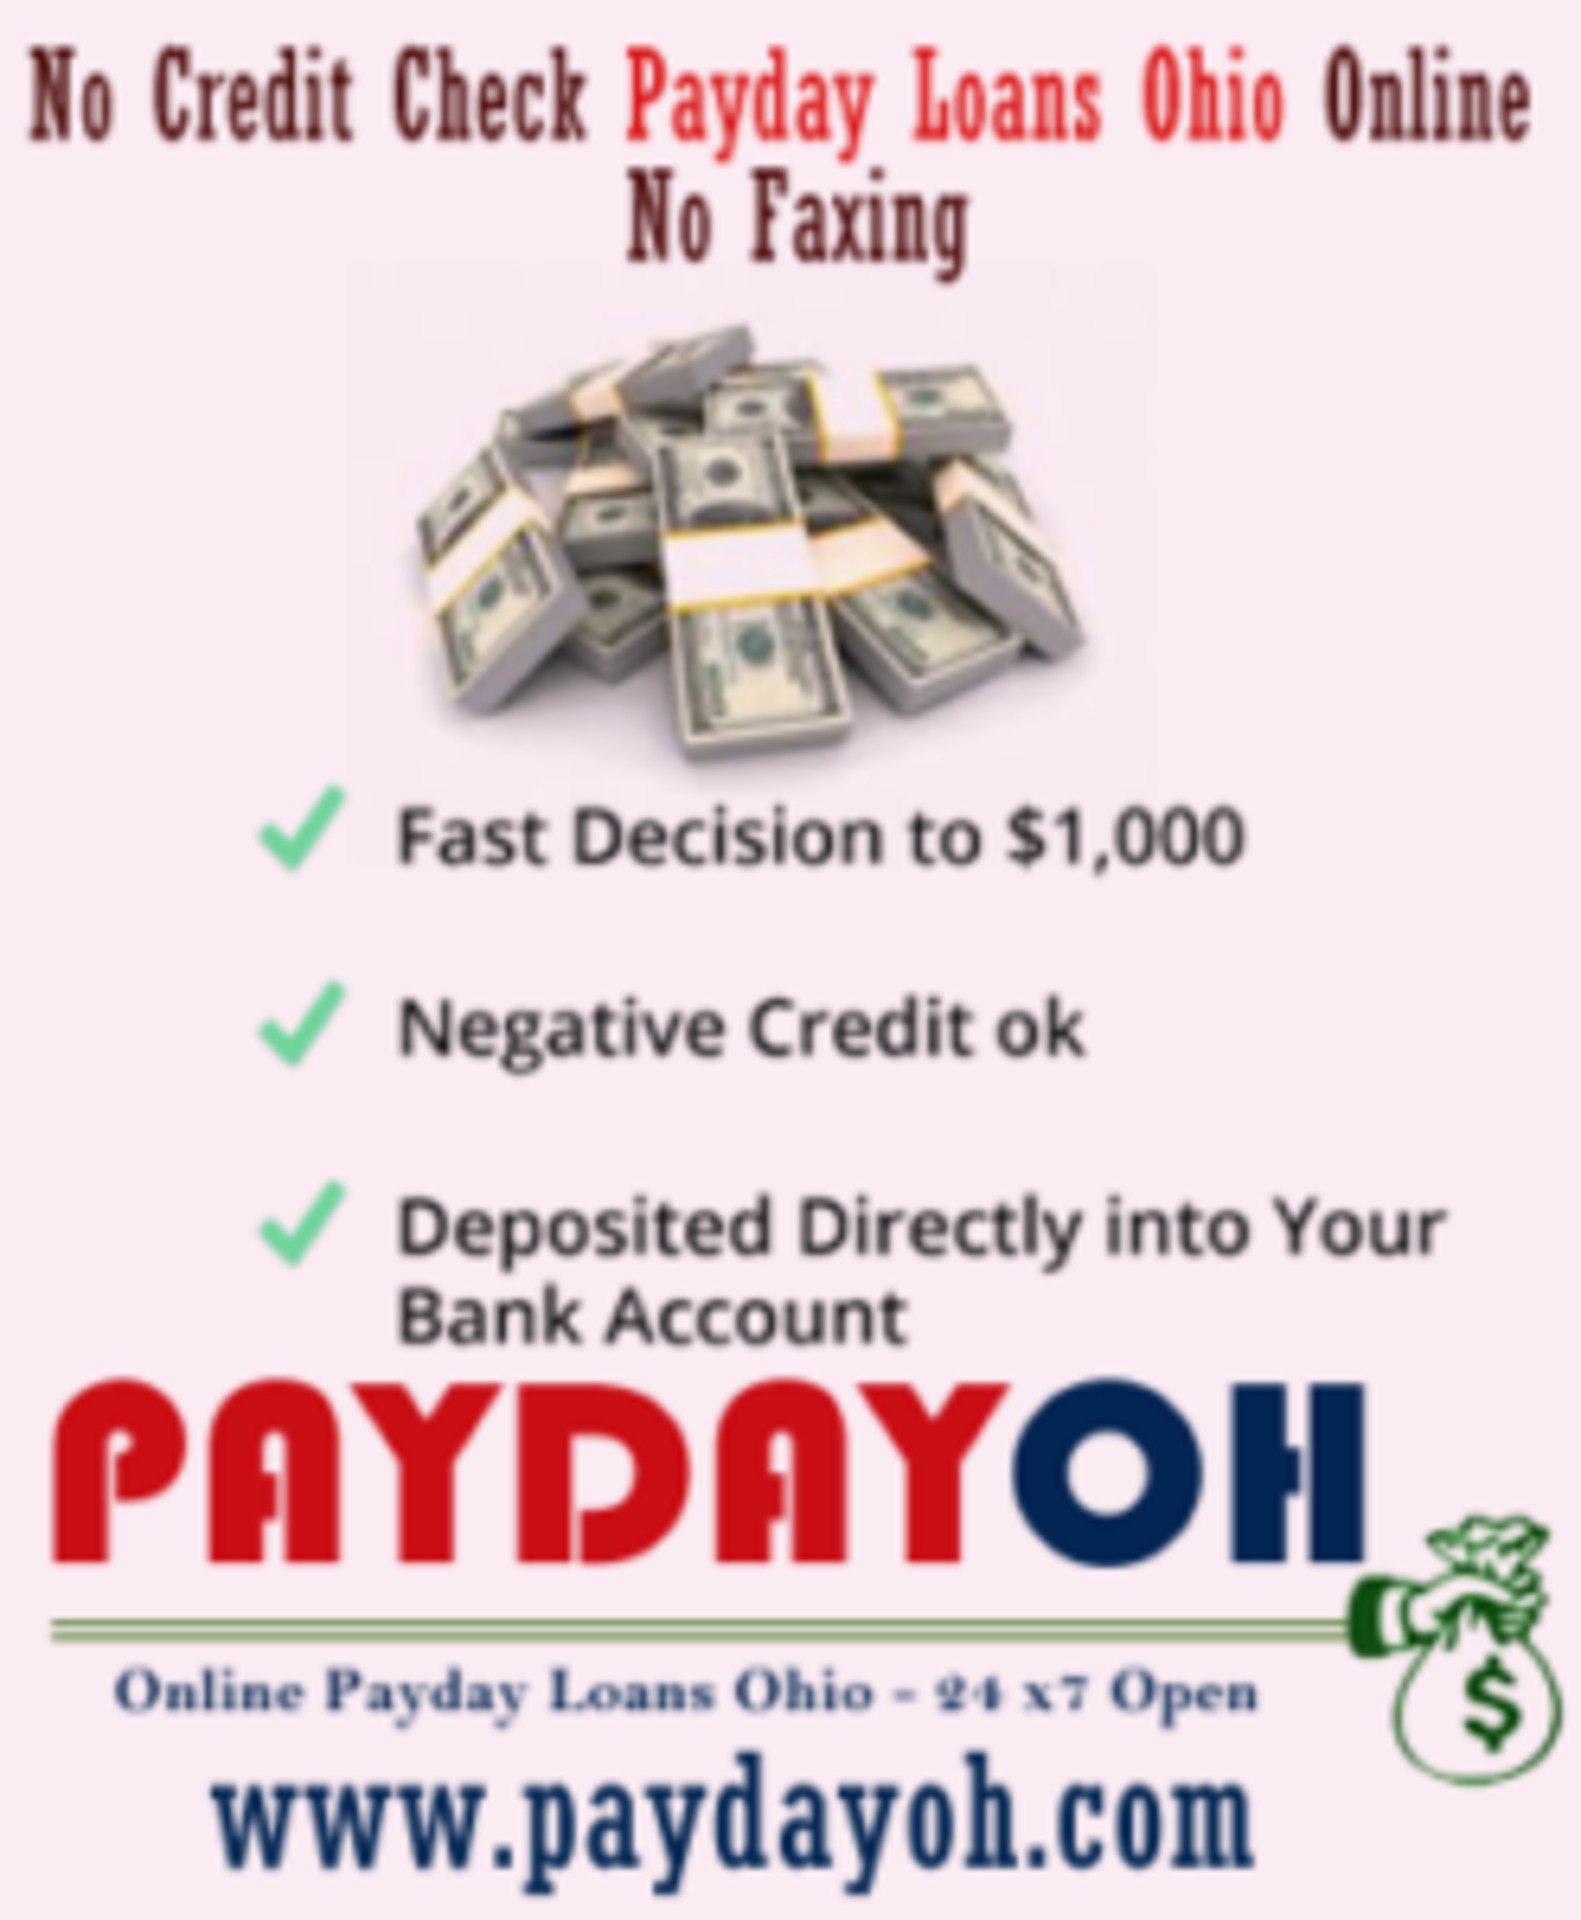 Payday Loans With Easy Approval